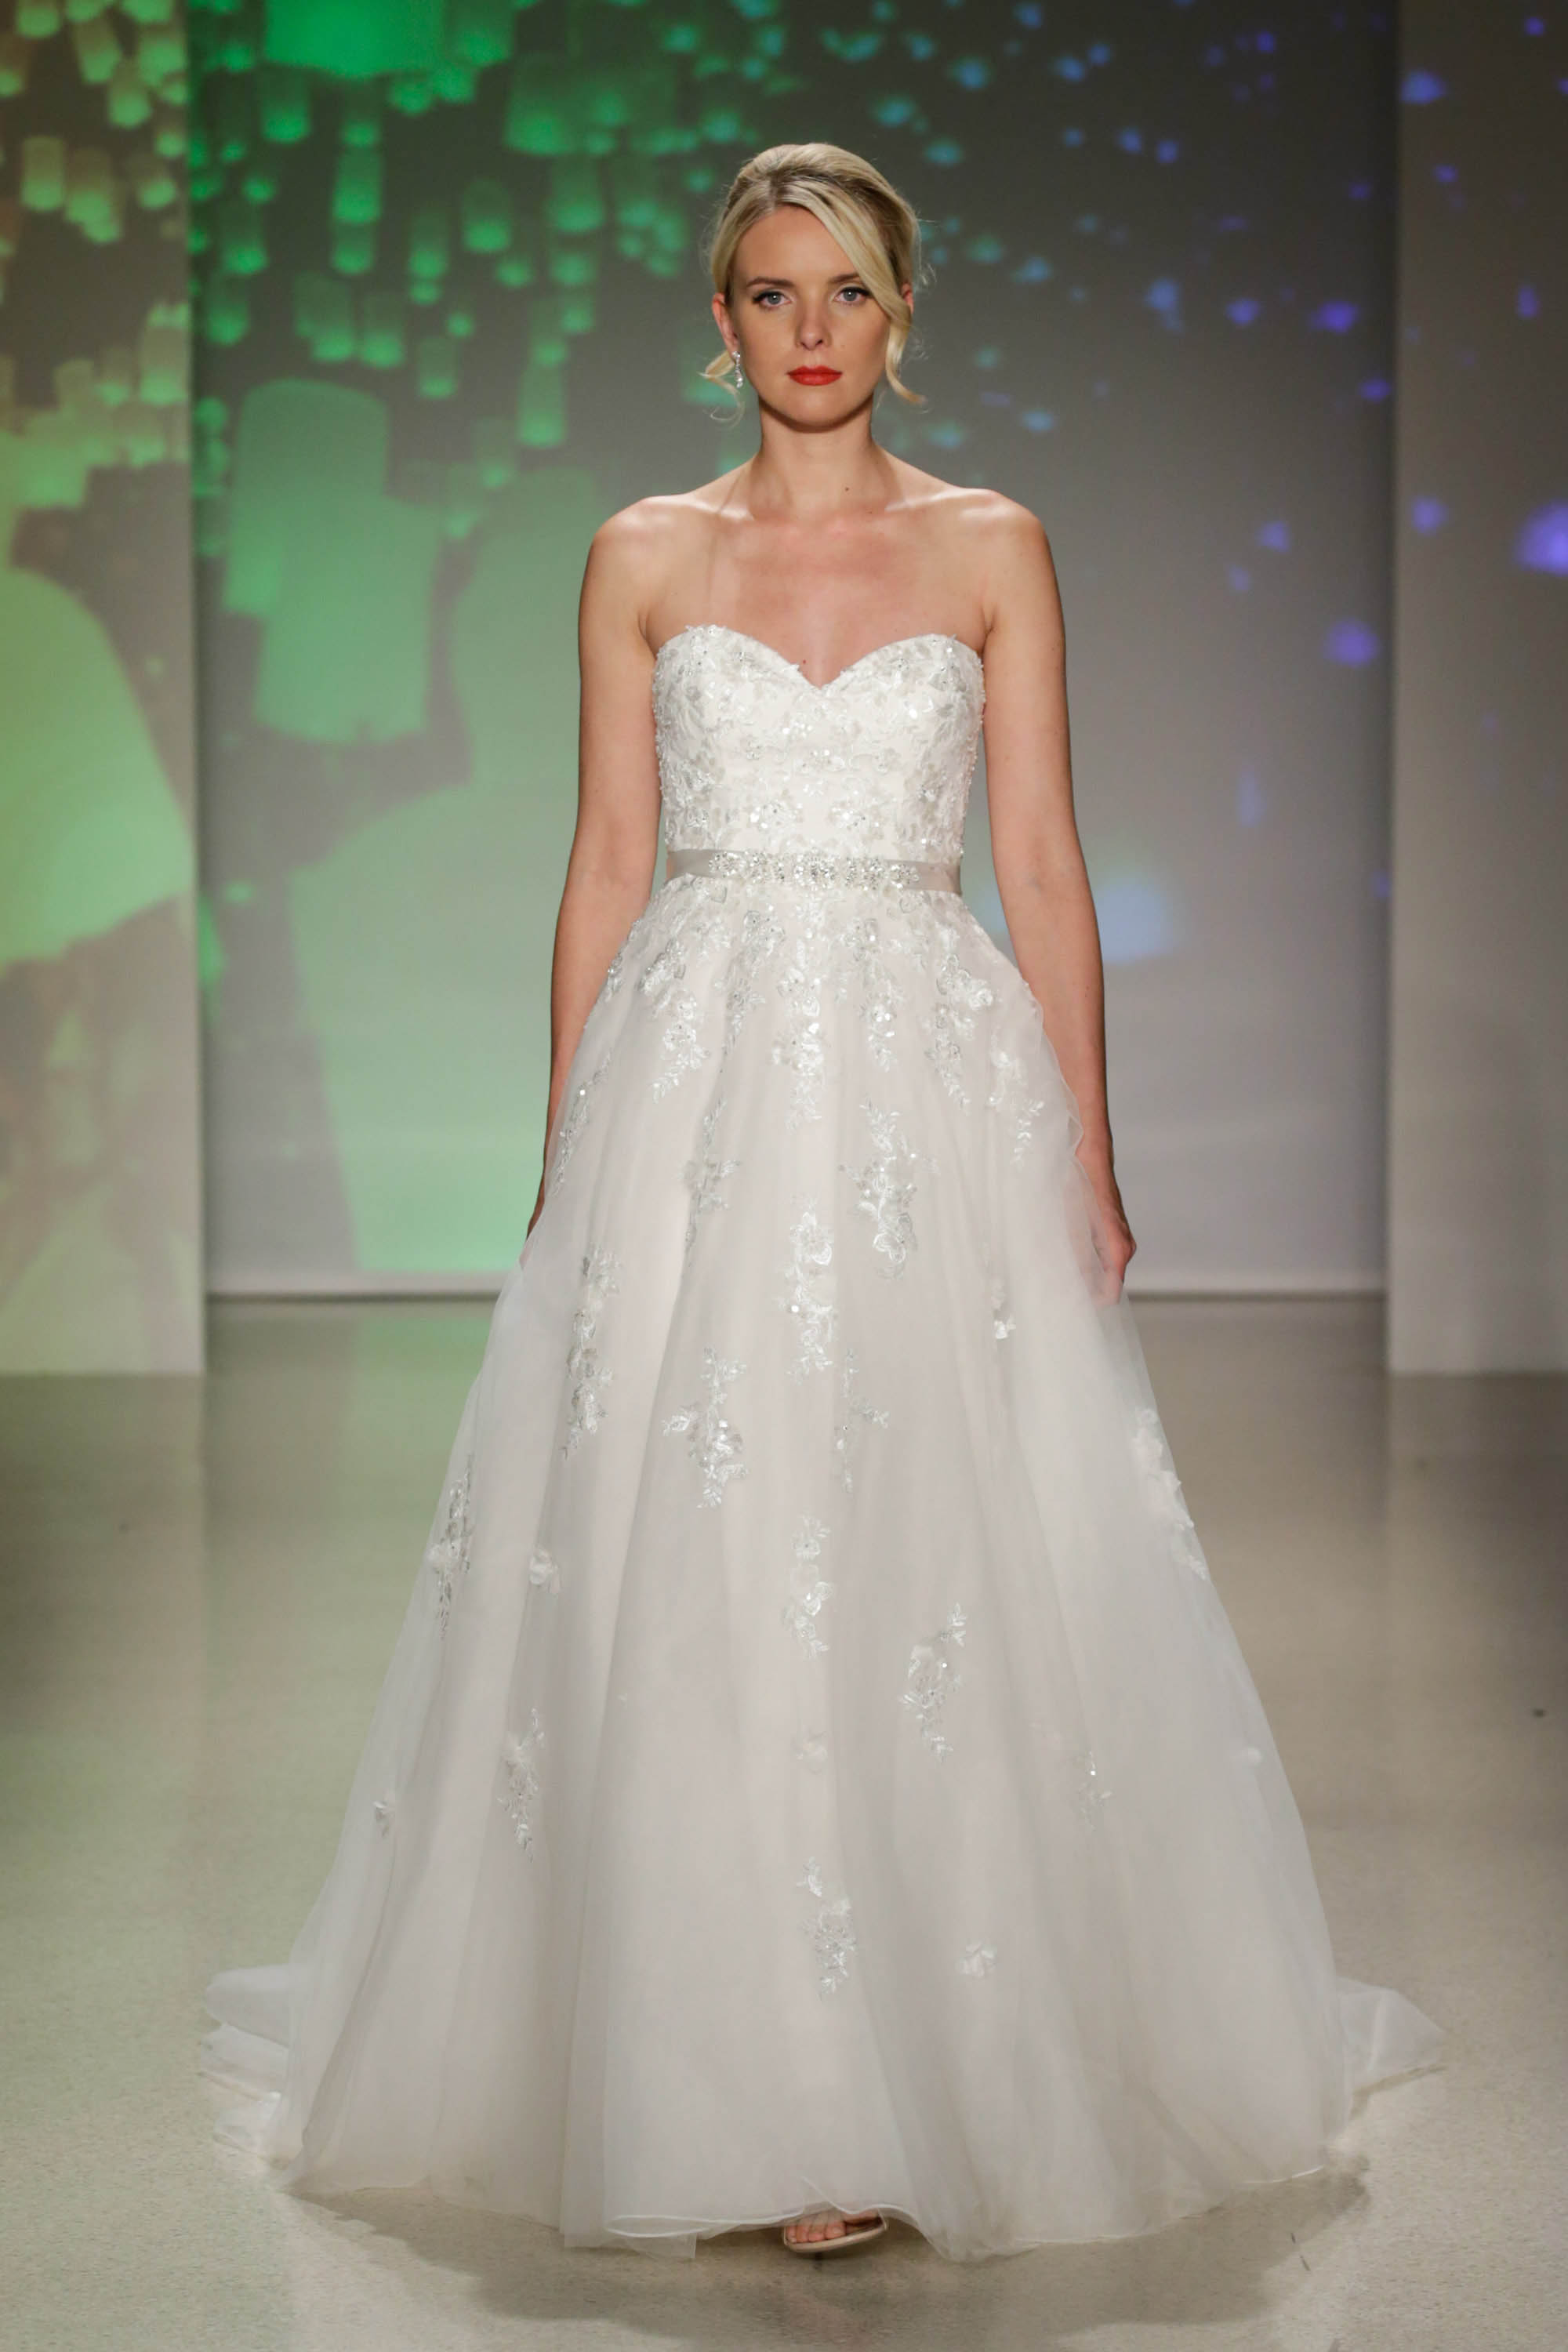 Disney Fairy Tale Weddings by Alfred Angelo Archives - Serenity Brides